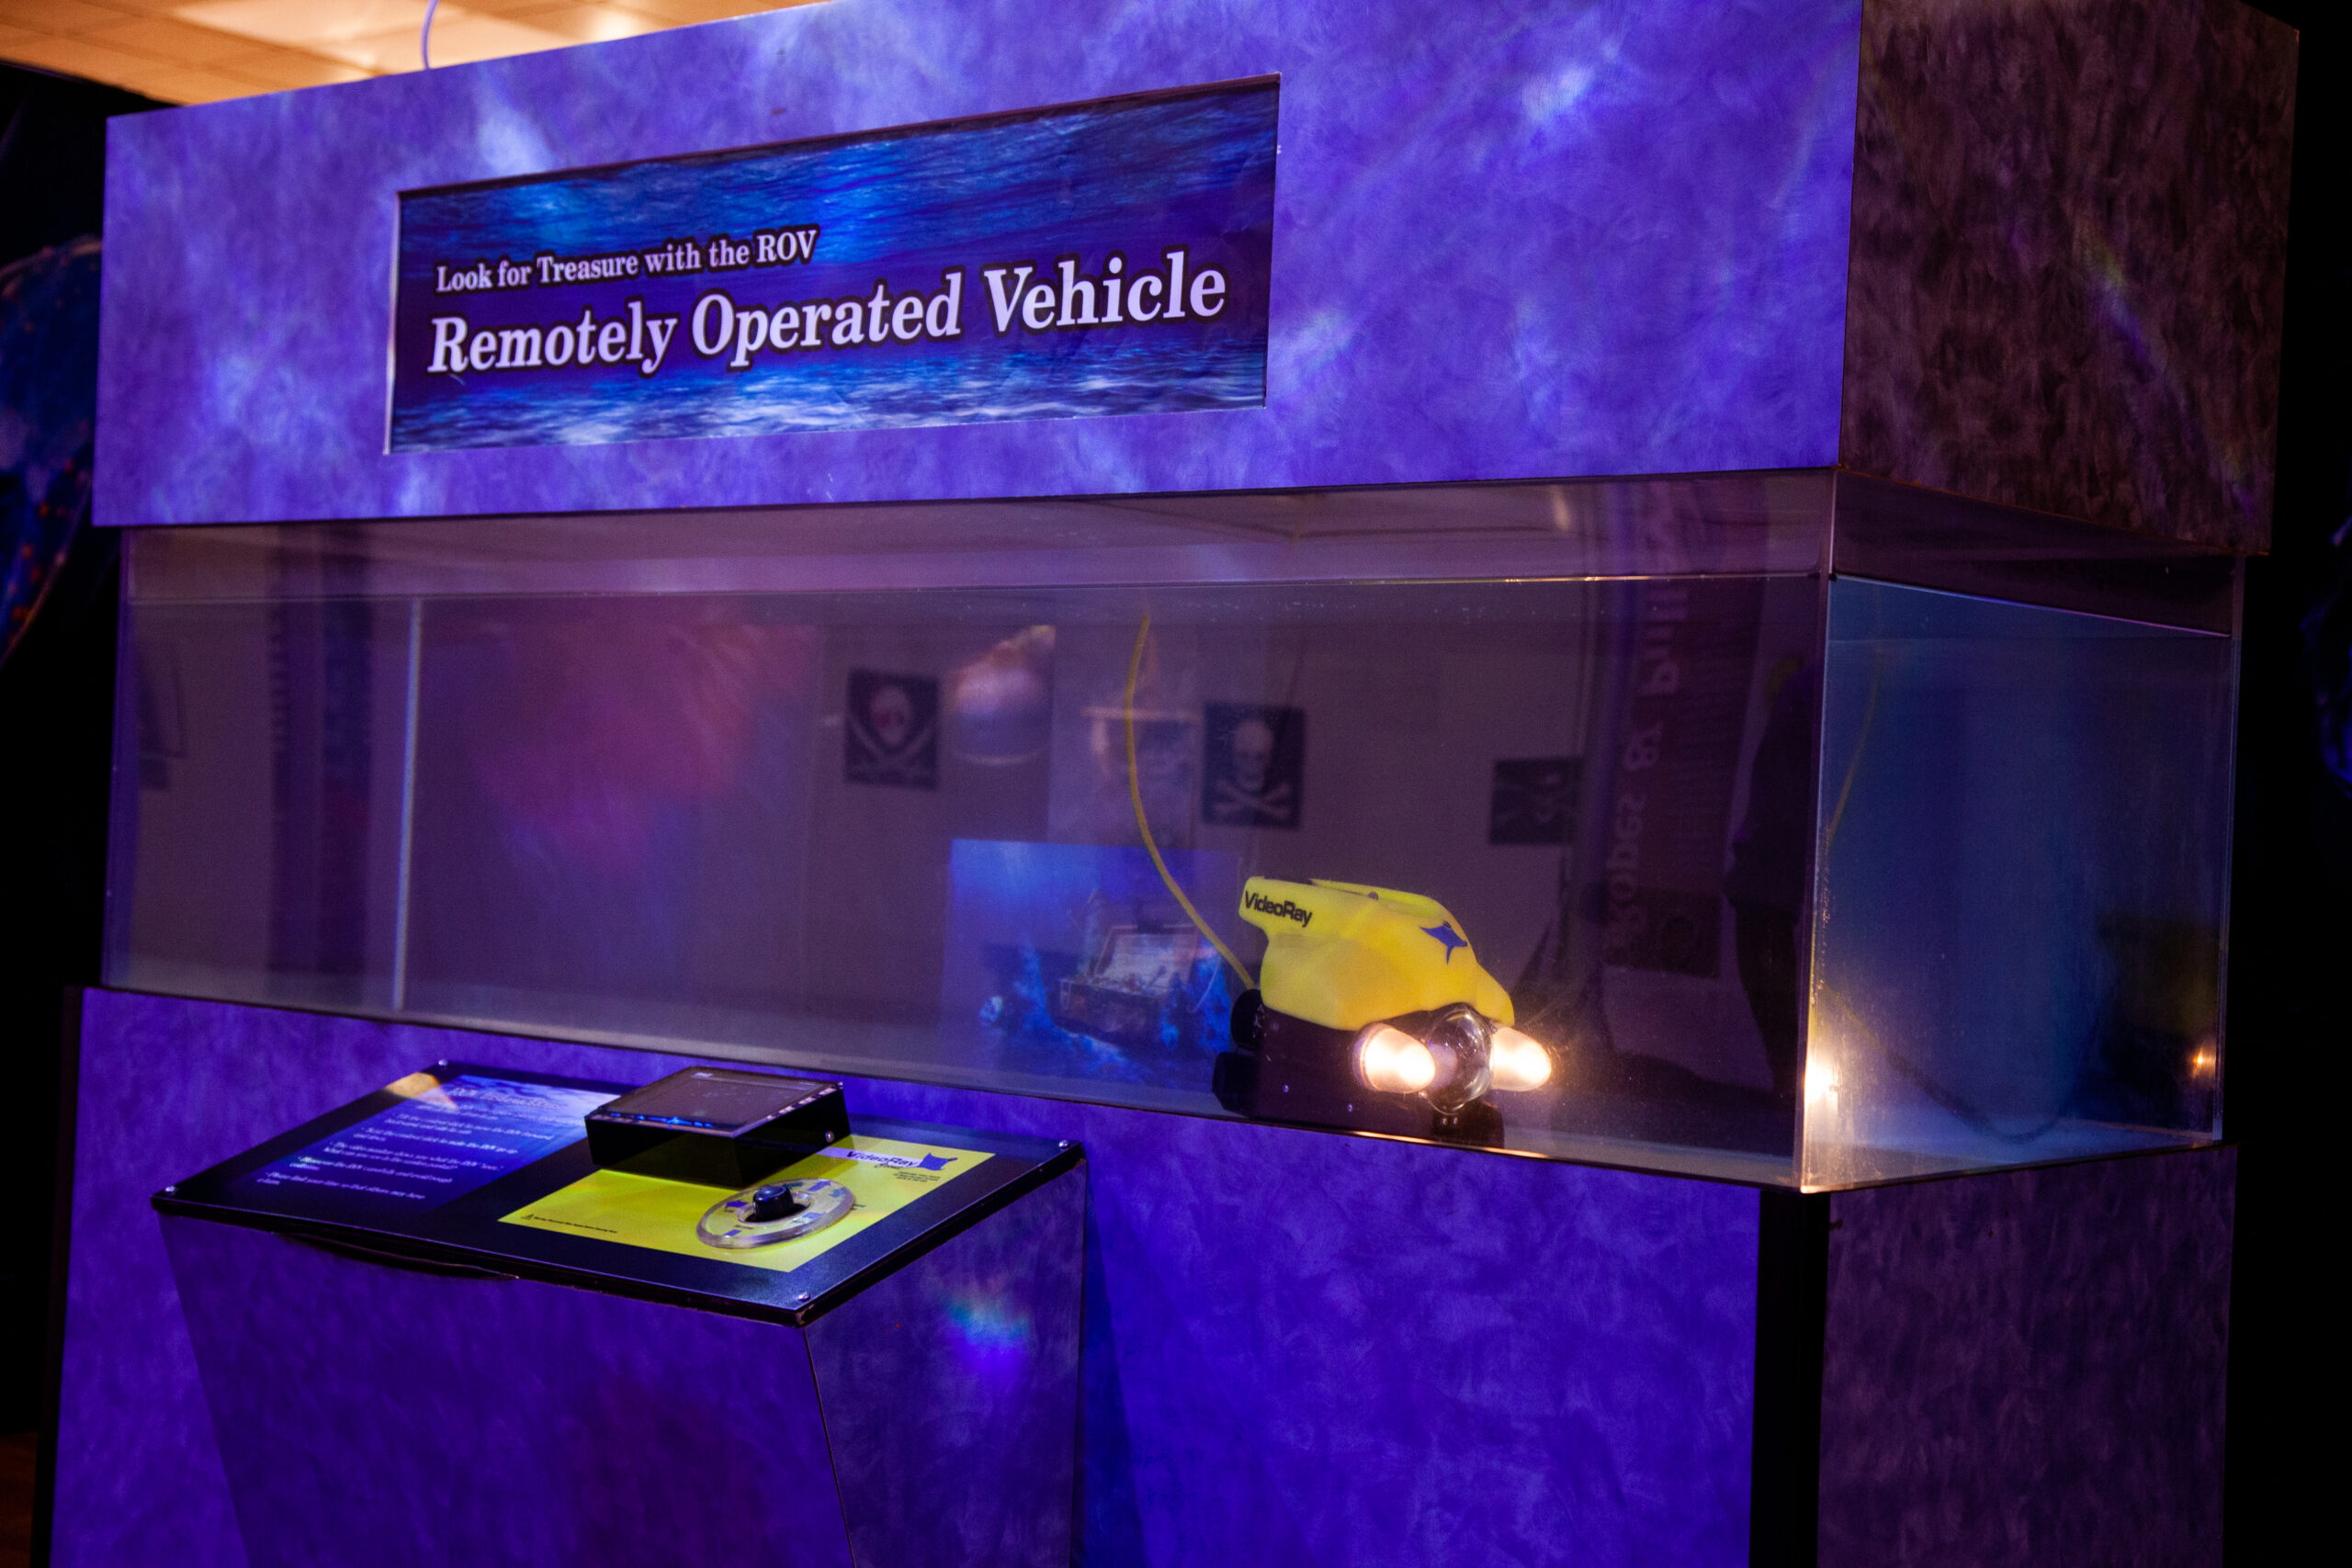 Search for treasure with the remote operated vehicle in the Treasure! exhibit.